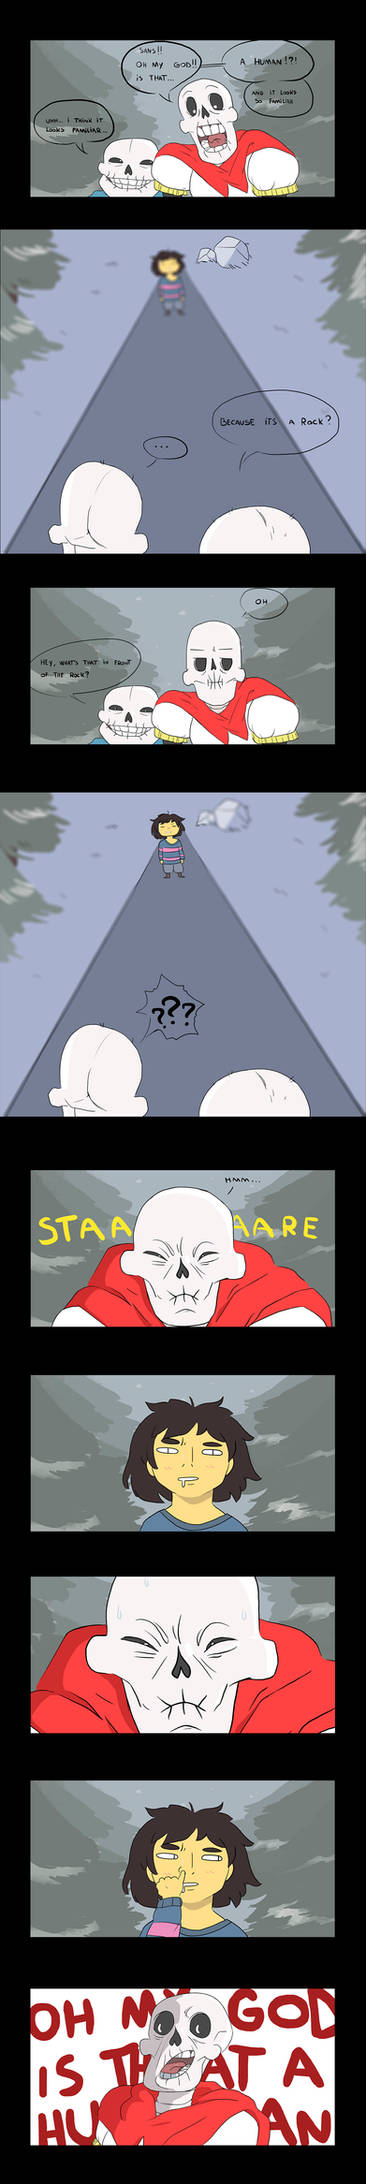 IS THAT A HUMAN (undertale comic)